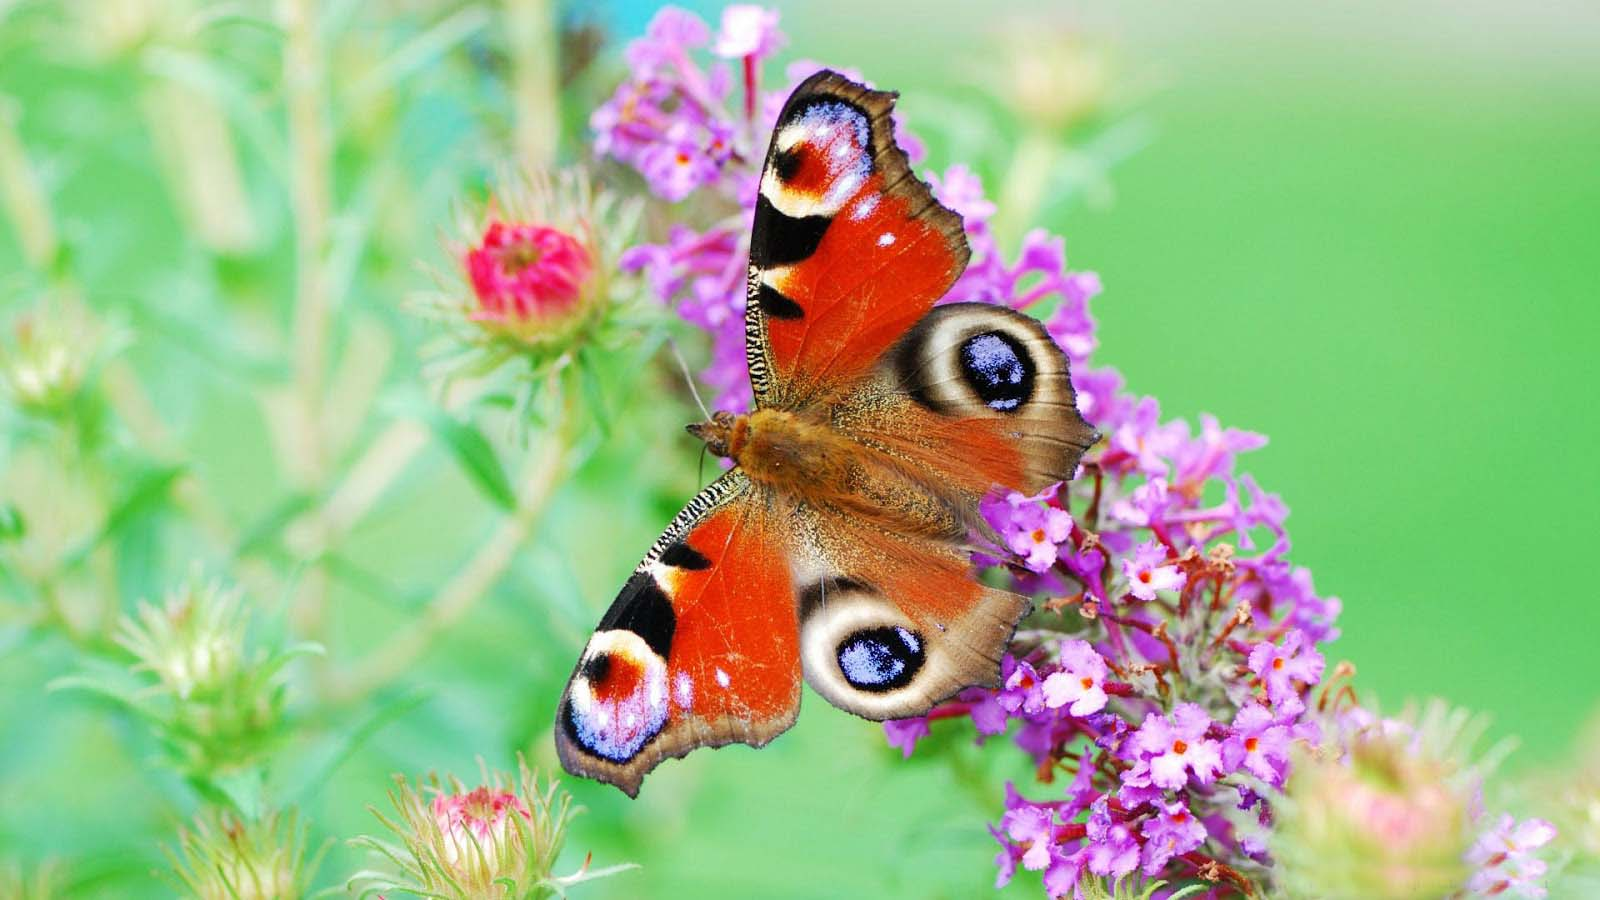 Beautiful Flower Image Wallpaper With Butterfly In Hd